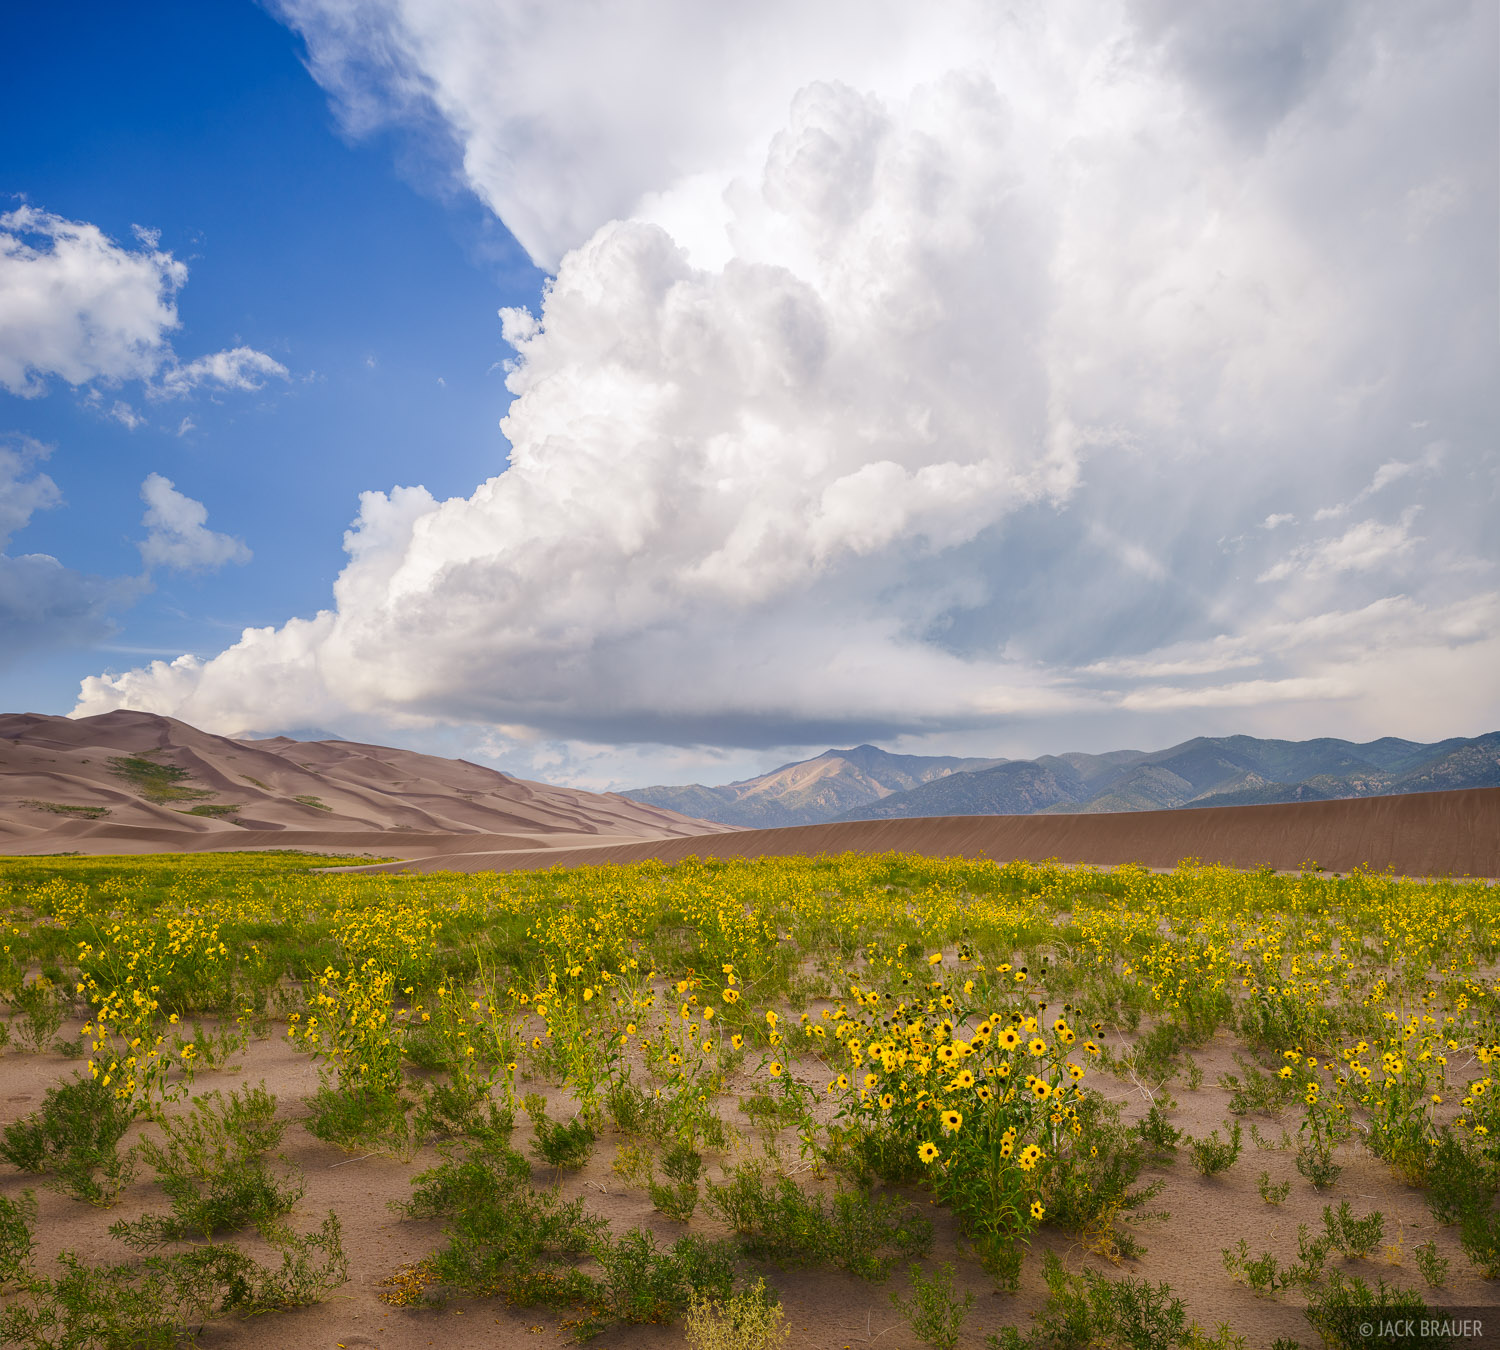 Praire sunflowers in the Great Sand Dunes, with a massive thundercloud towering beyond.